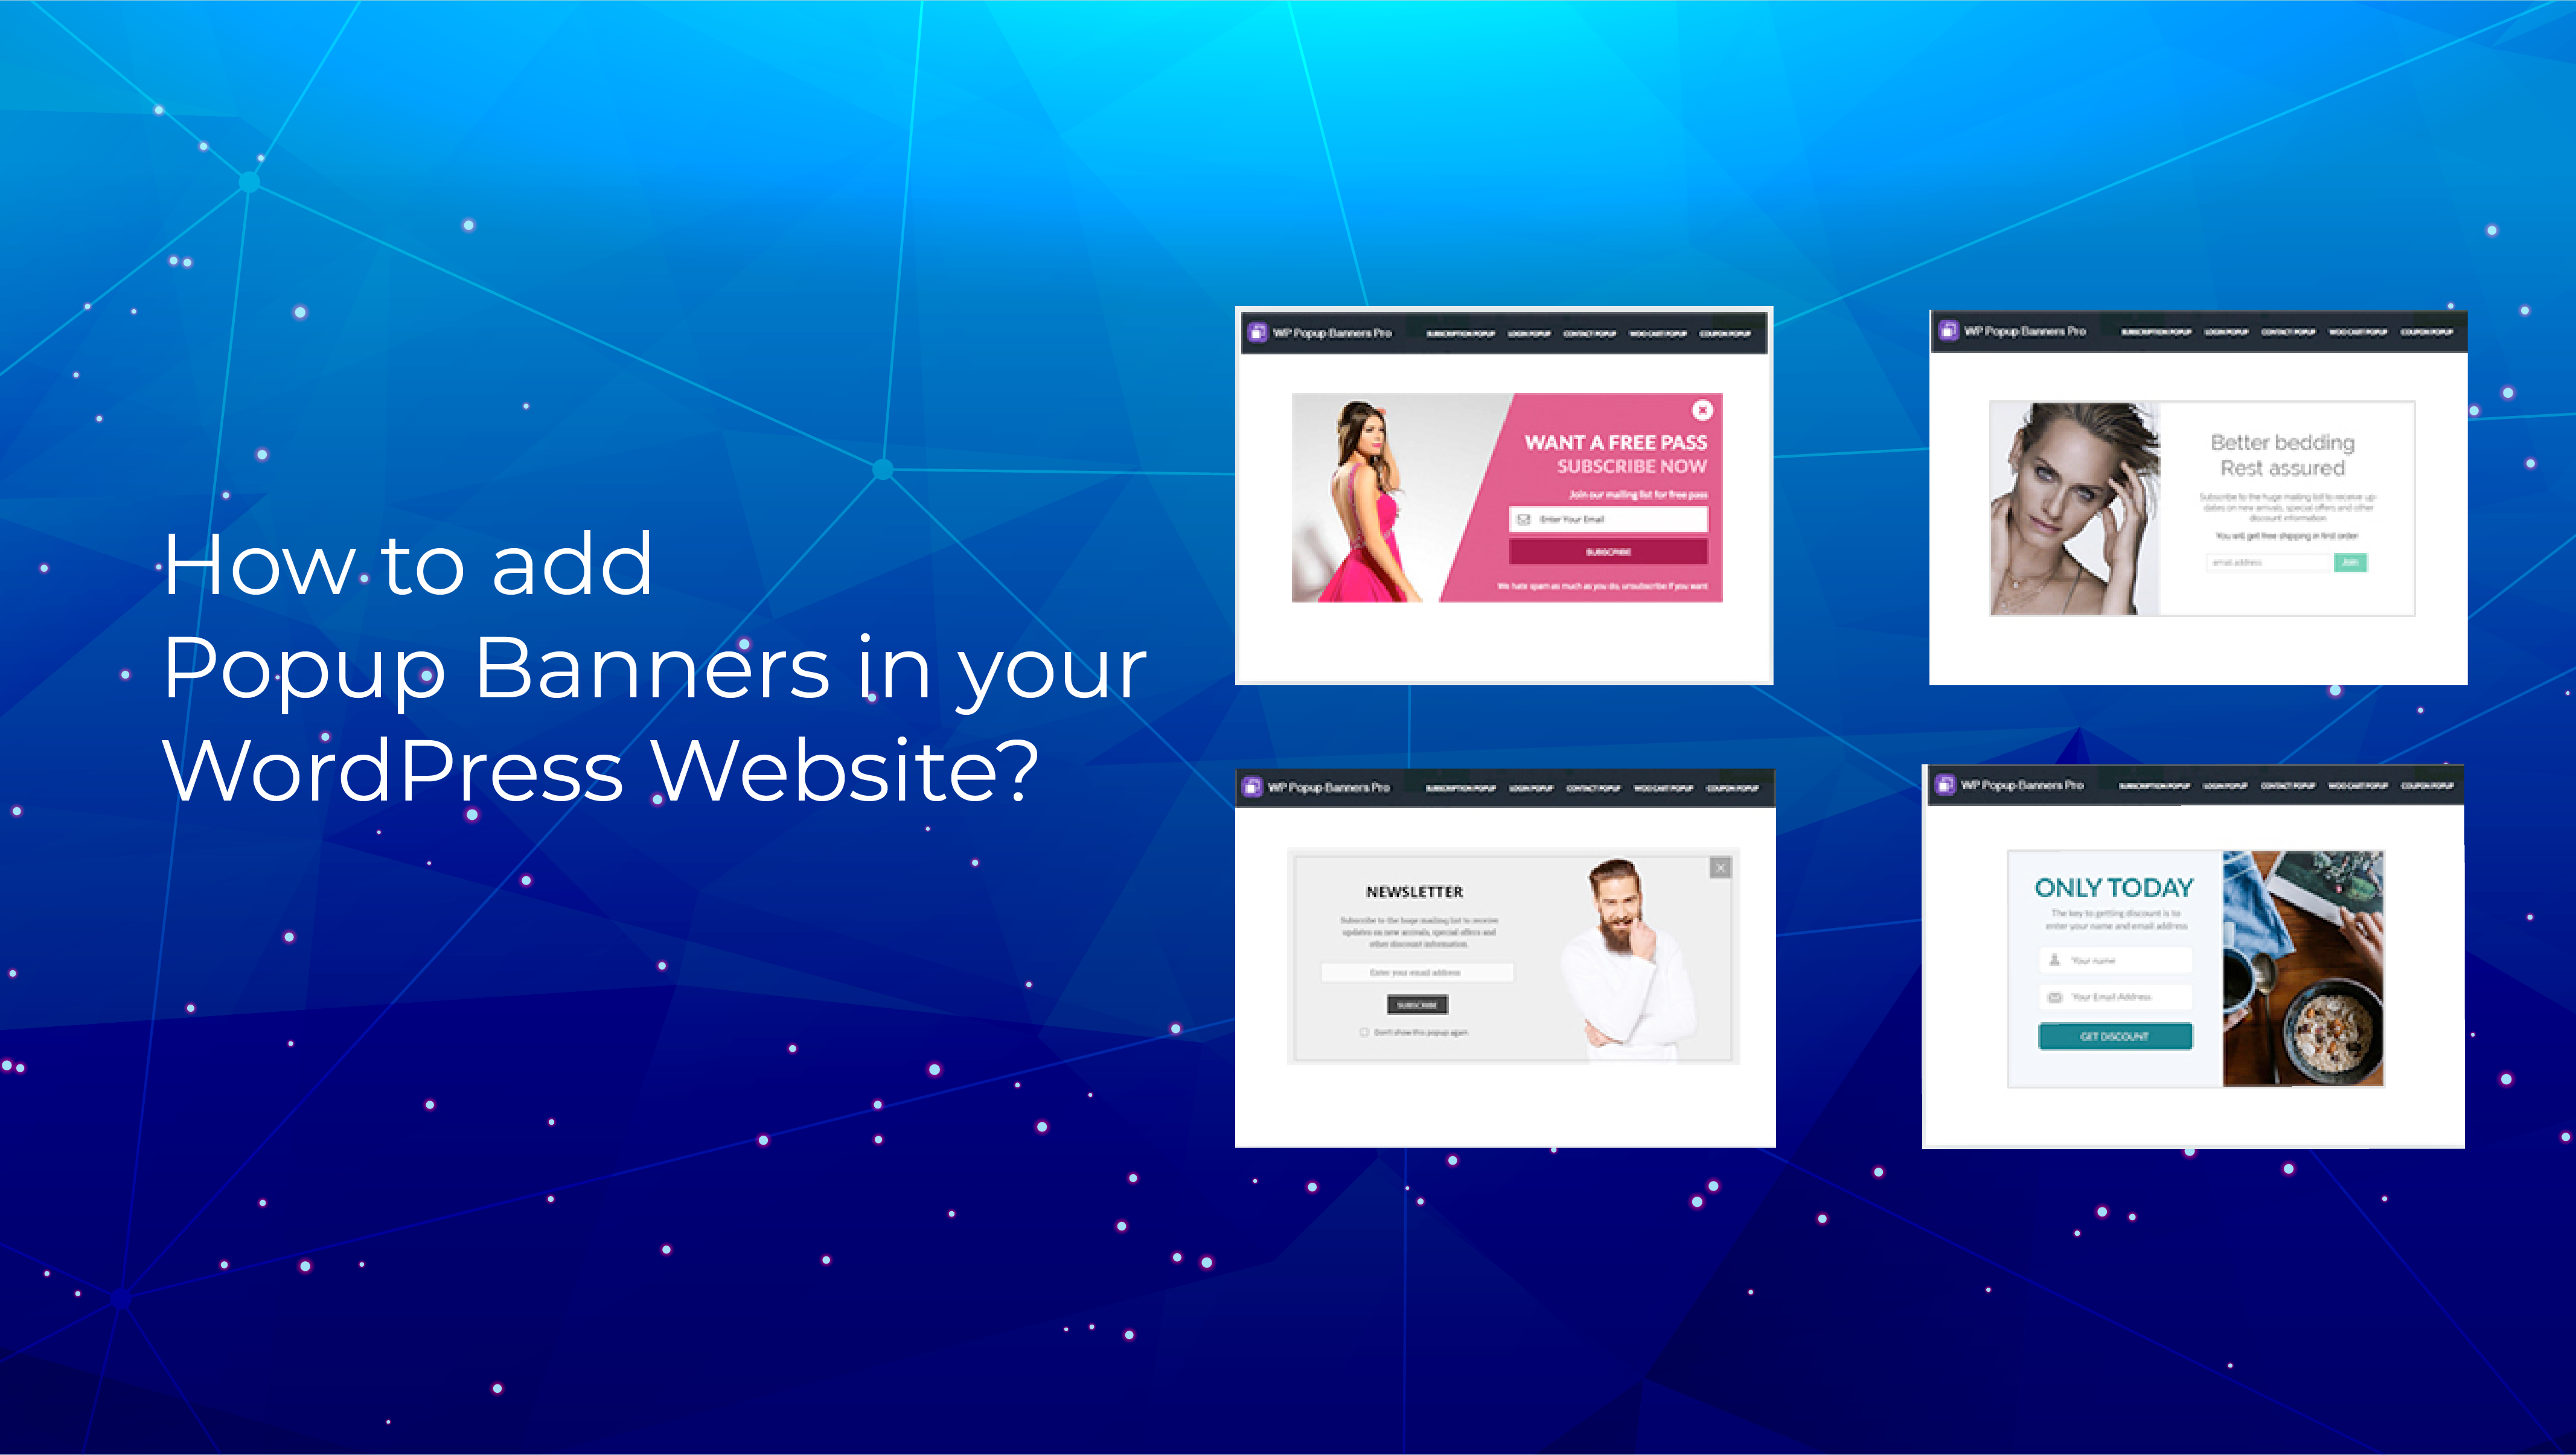 How to Add Popup Banners in your WordPress Website?